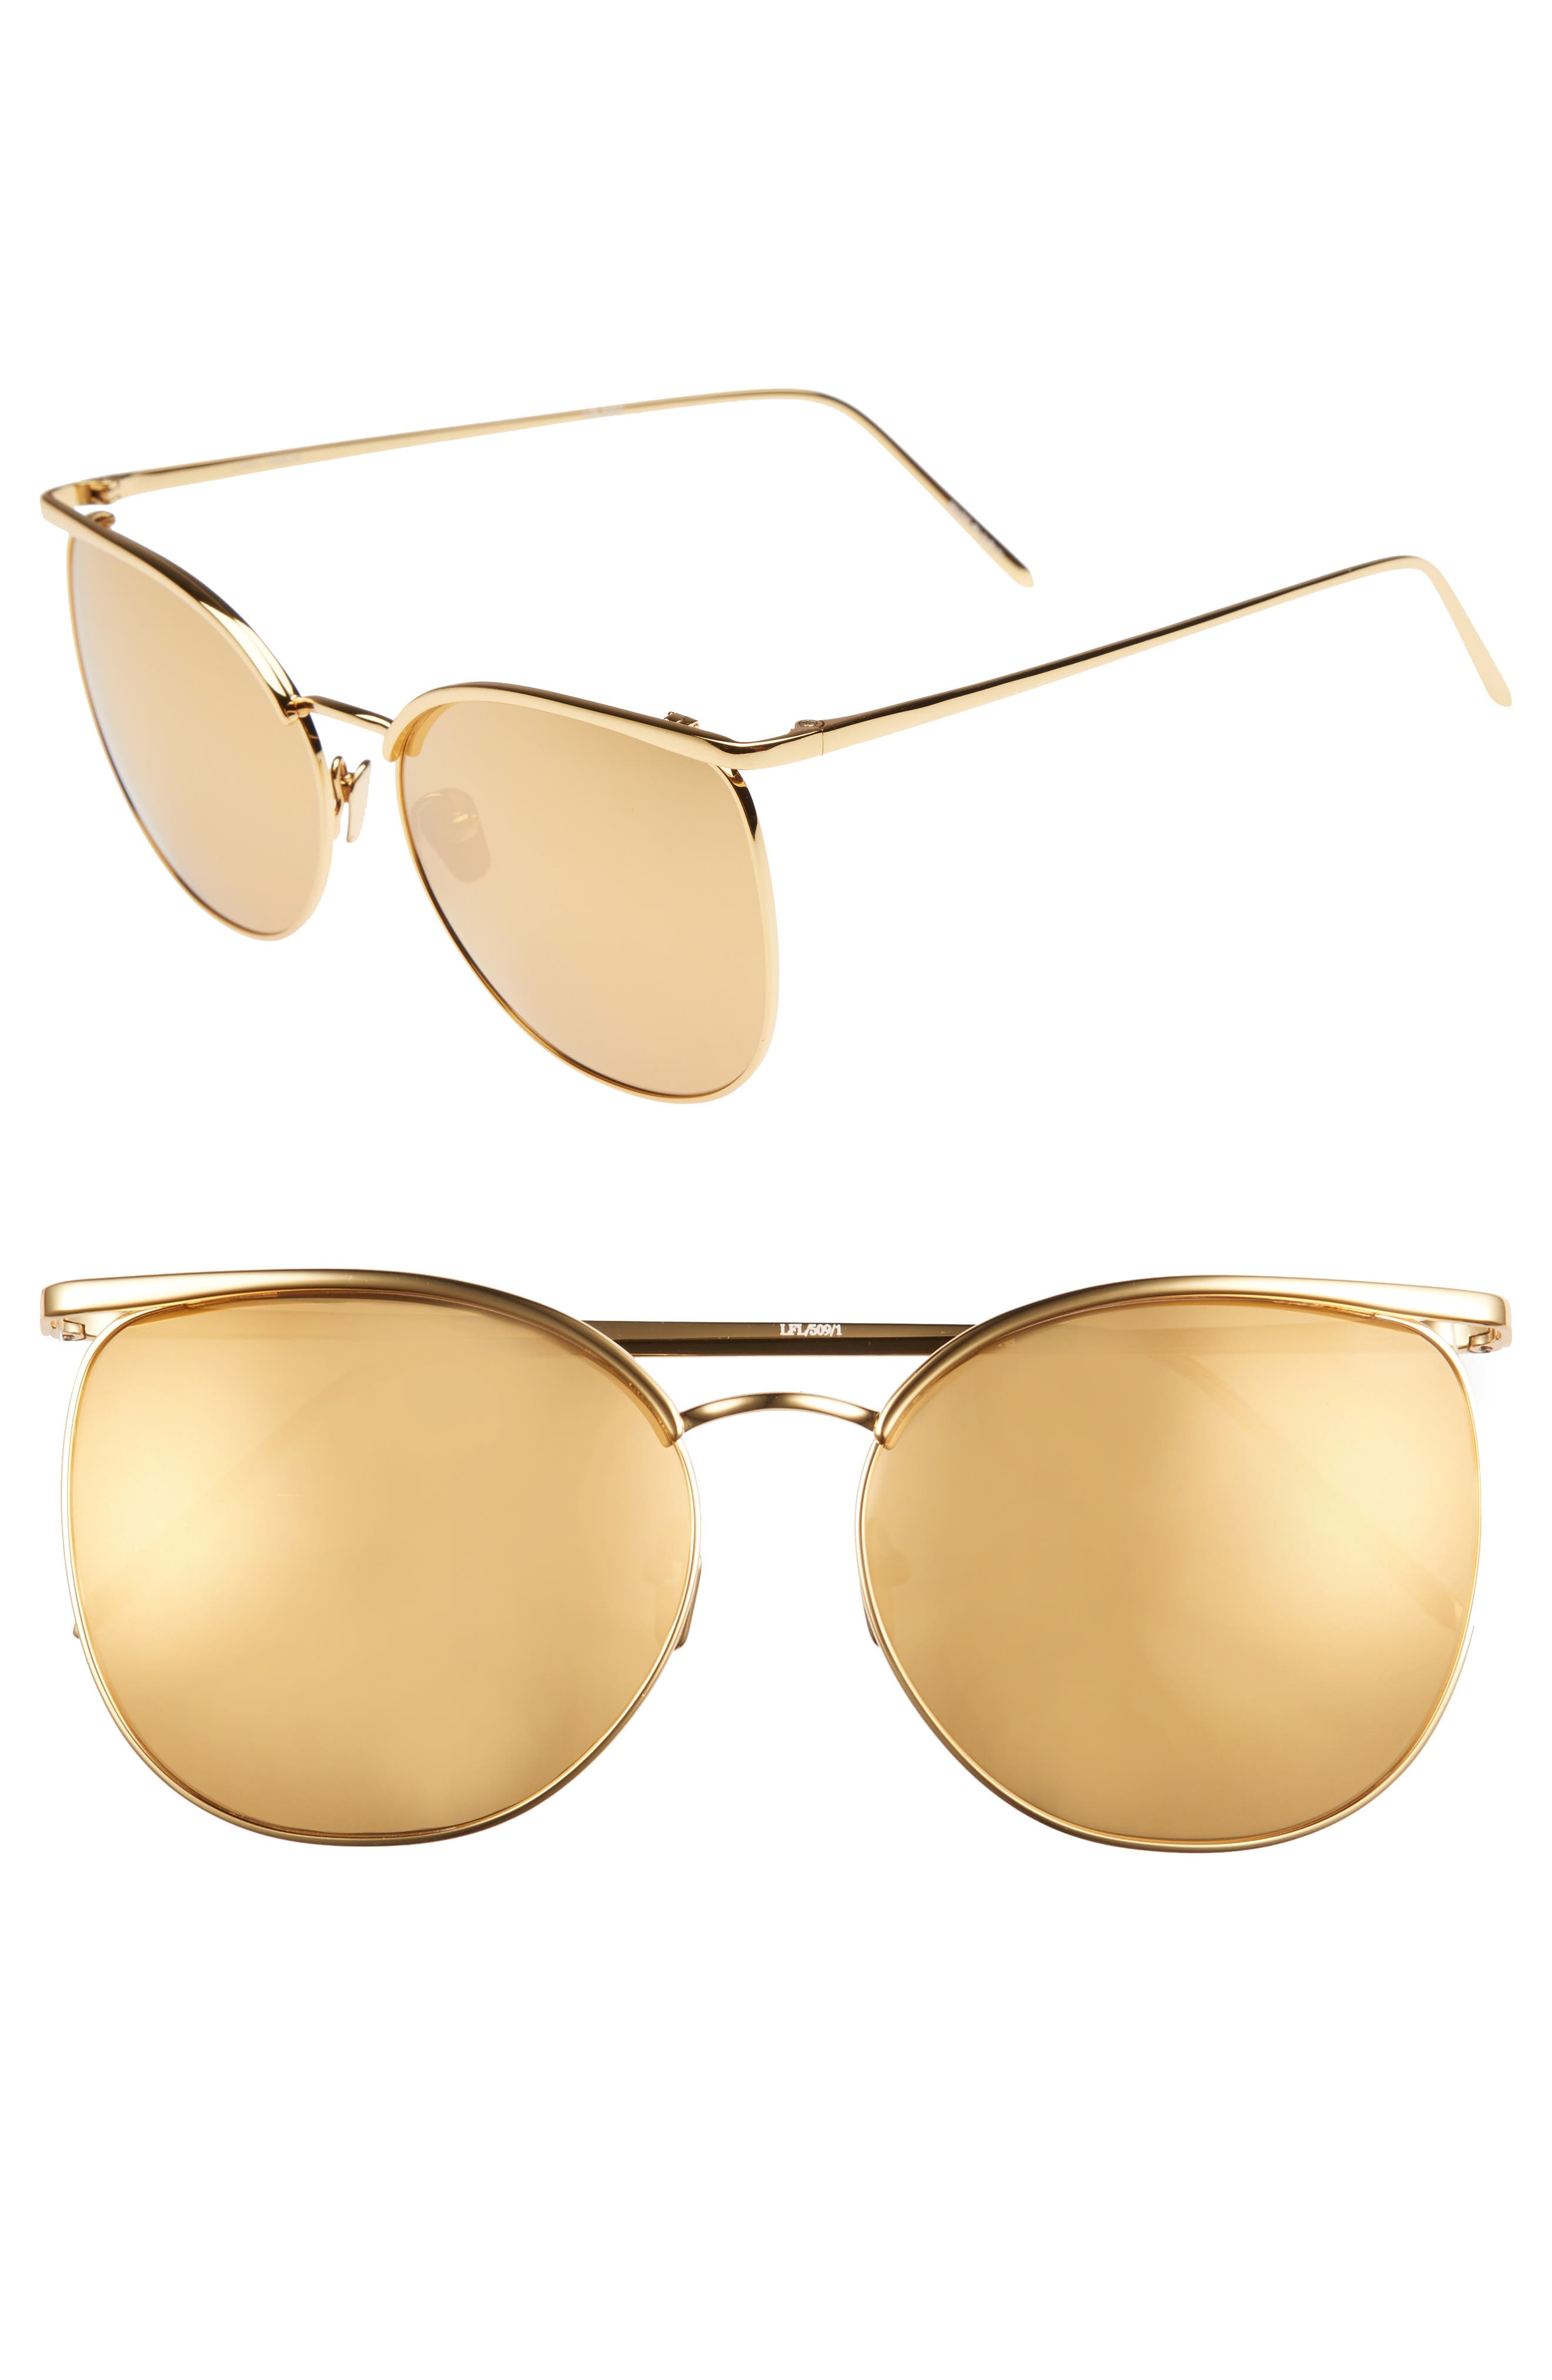 59mm Mirrored 22 Karat Gold Trim Sunglasses,                         Main,                         color, Yellow Gold/ Gold